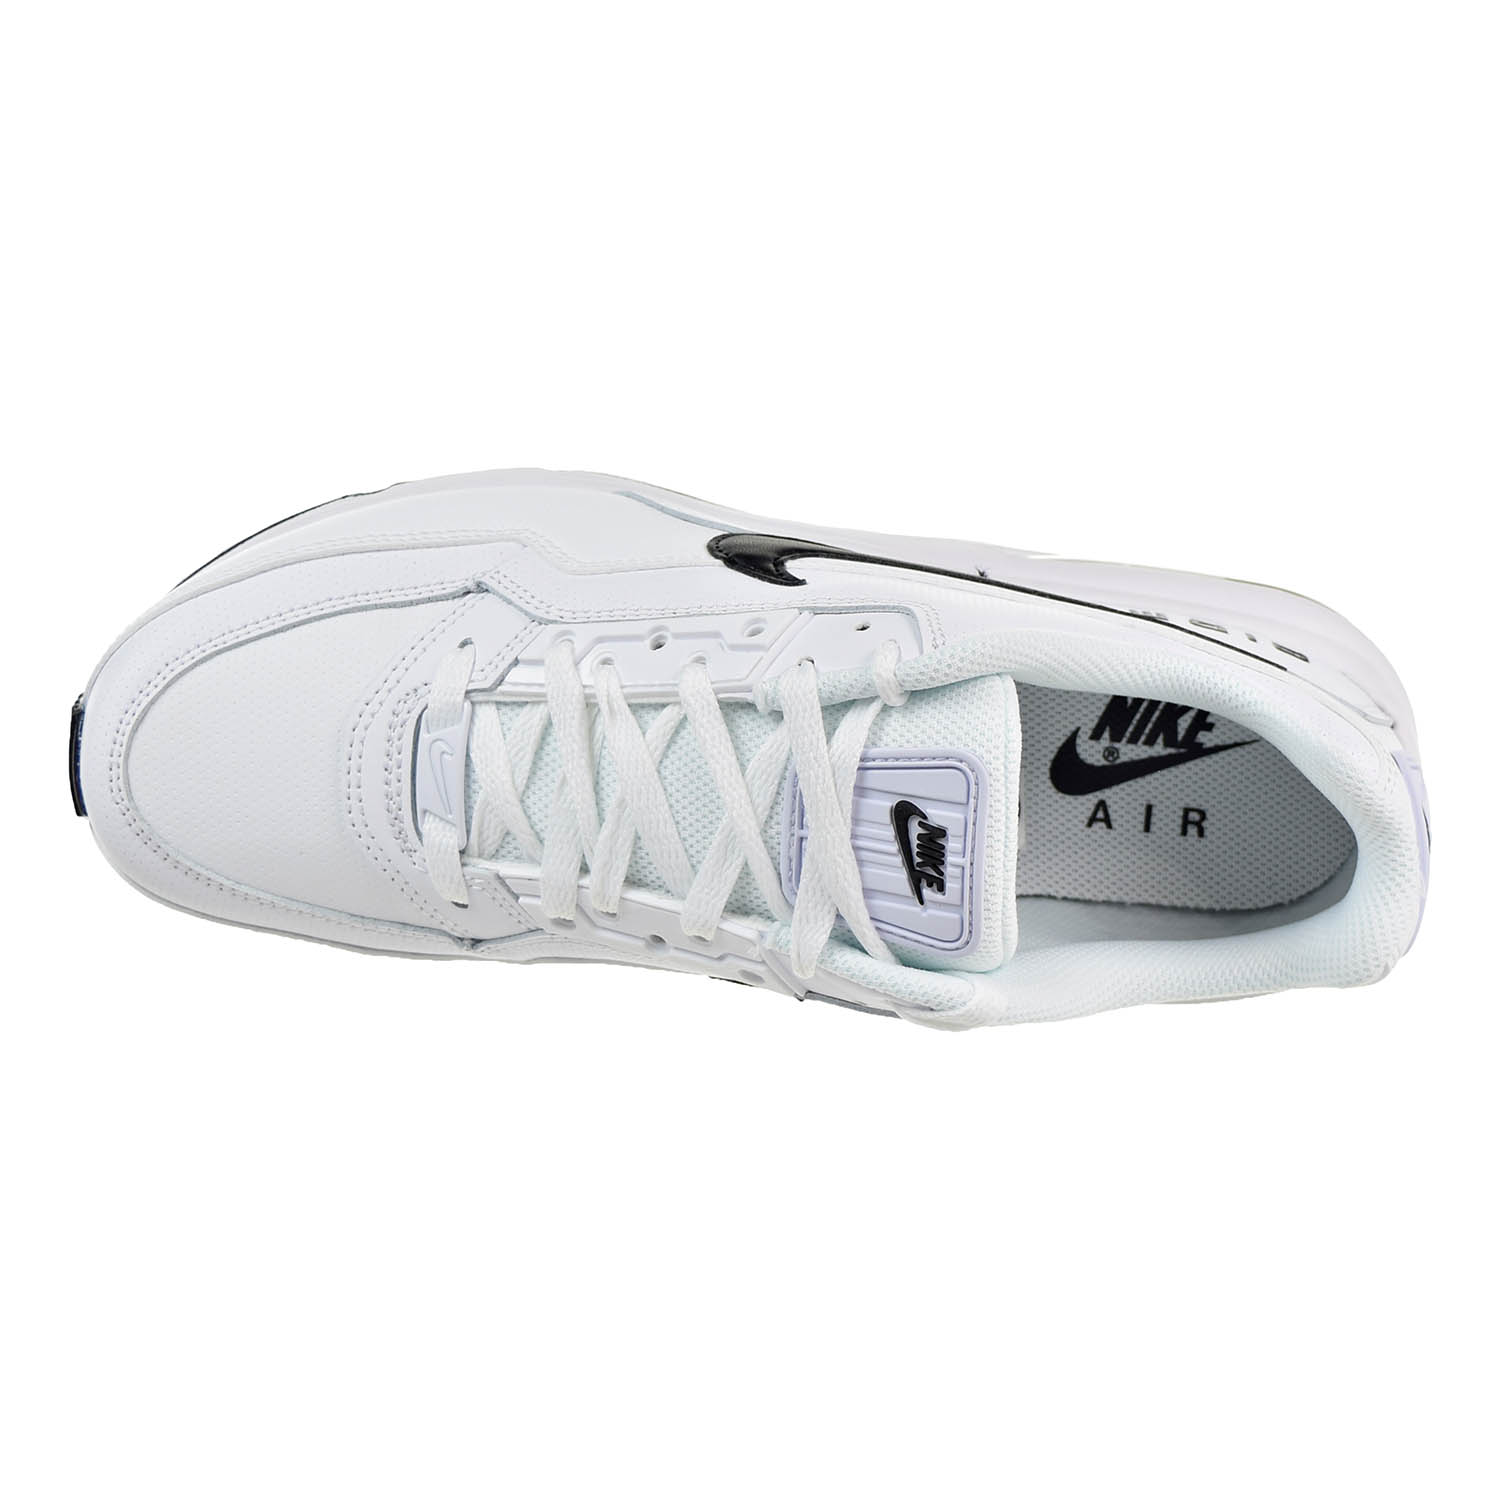 8ee6b1e664d3ad Nike - Nike Air Max LTD 3 Men s Shoe White Black 687977-107 - Walmart.com